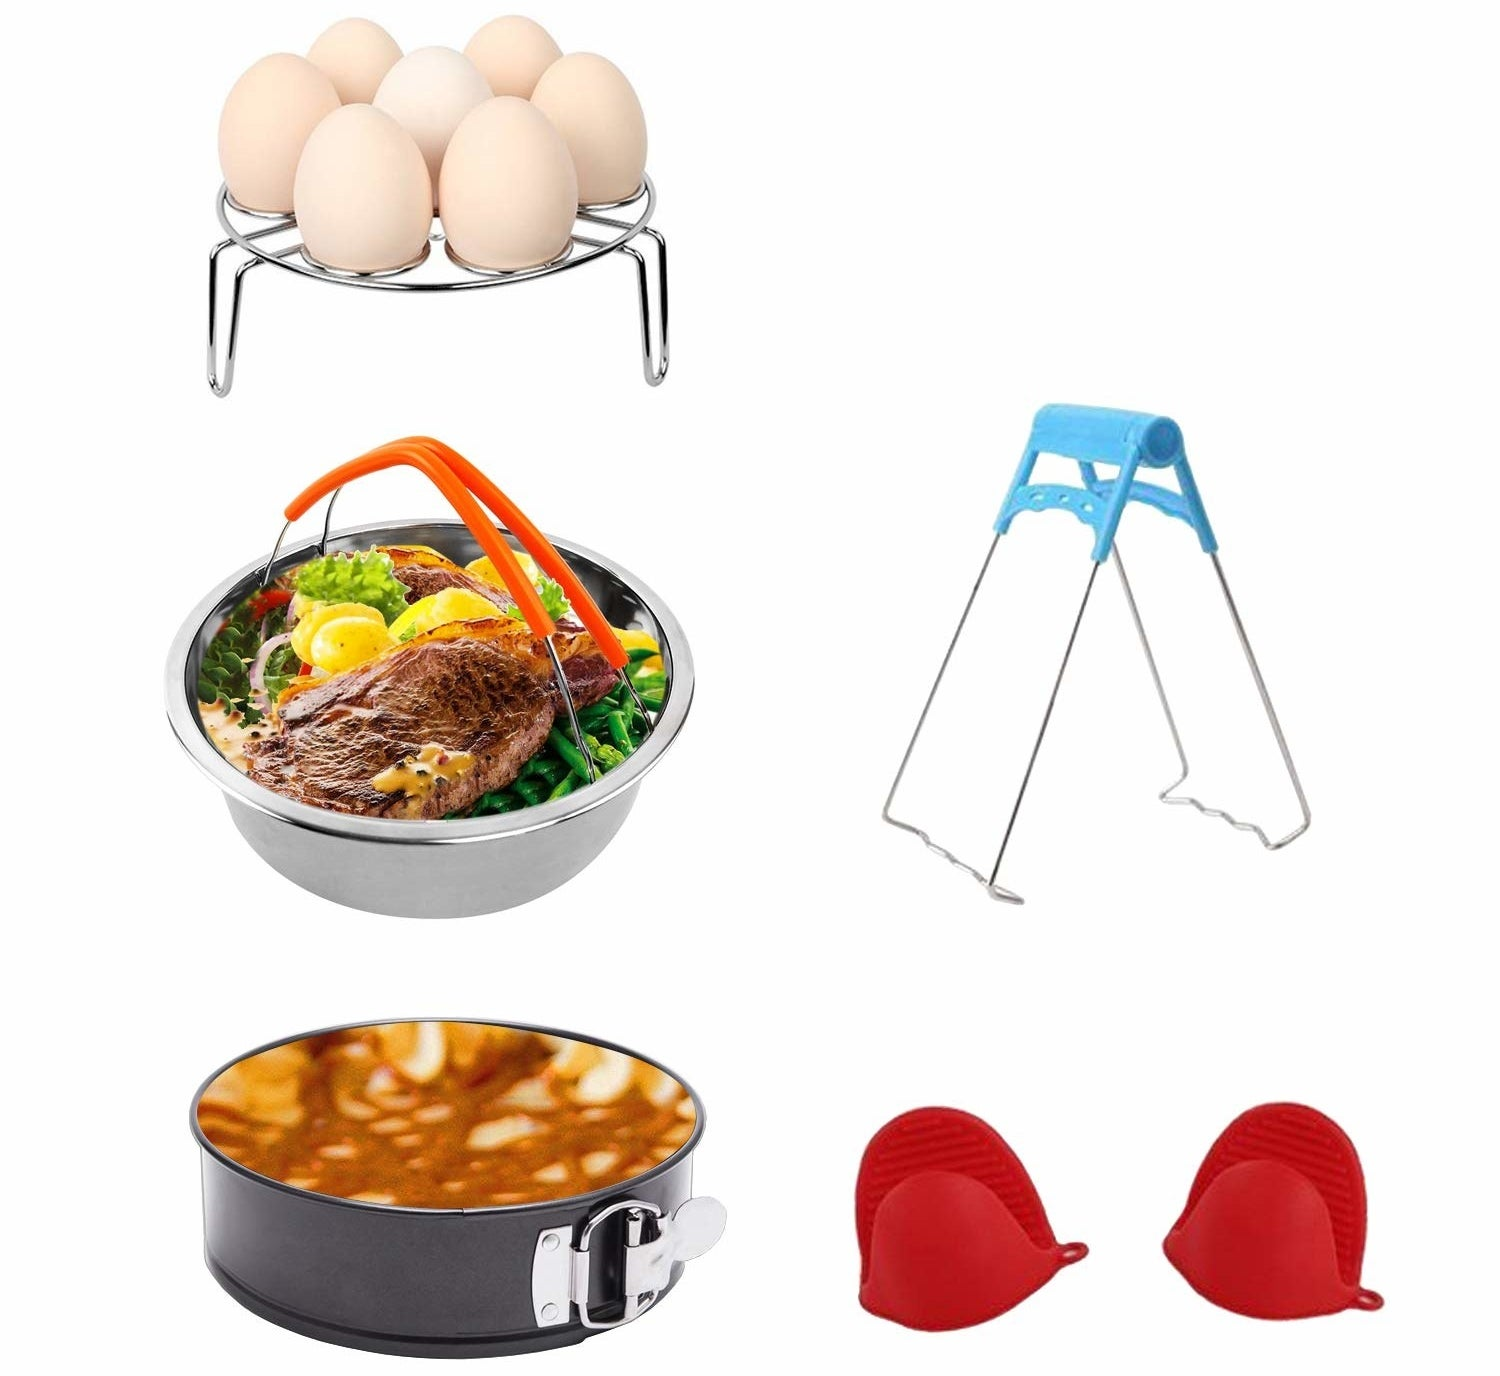 """Includes a steamer basket, an egg steamer rack, a non-stick springform pan, a steaming stand, and one pair of silicone cooking pot mitts. The items in this set are made of food-grade stainless steel, have a high-temperature resistance, and corrosion-resistant. And if you're friend doesn't own an pressure cooker yet, and you're feeling extra generous, get them one here.Promising review: """"These accessories are a game-changer if you cook with an Instant Pot. No more figuring out ways to cook certain things, and not get burnt. Why make things hard on yourself when the accessories cost so little?"""" —Stacey Marie ThomasGet it from Amazon for $17.99."""